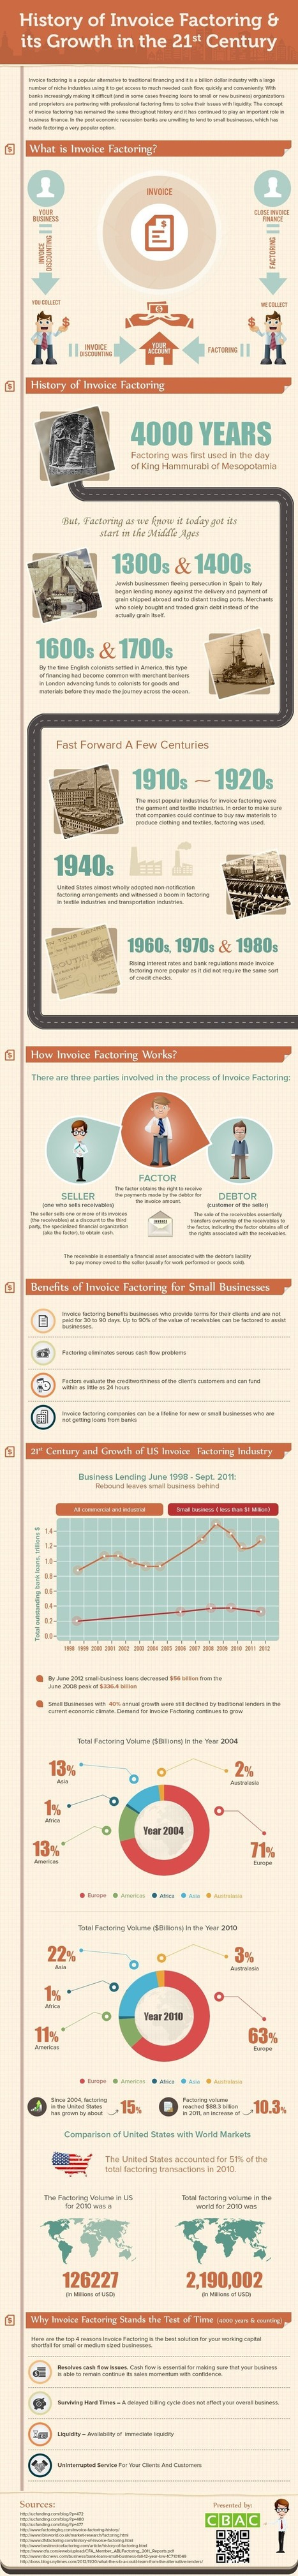 Invoice Factoring and Its Growth in the 21st Century | Infographics | Alternative Finance | Scoop.it